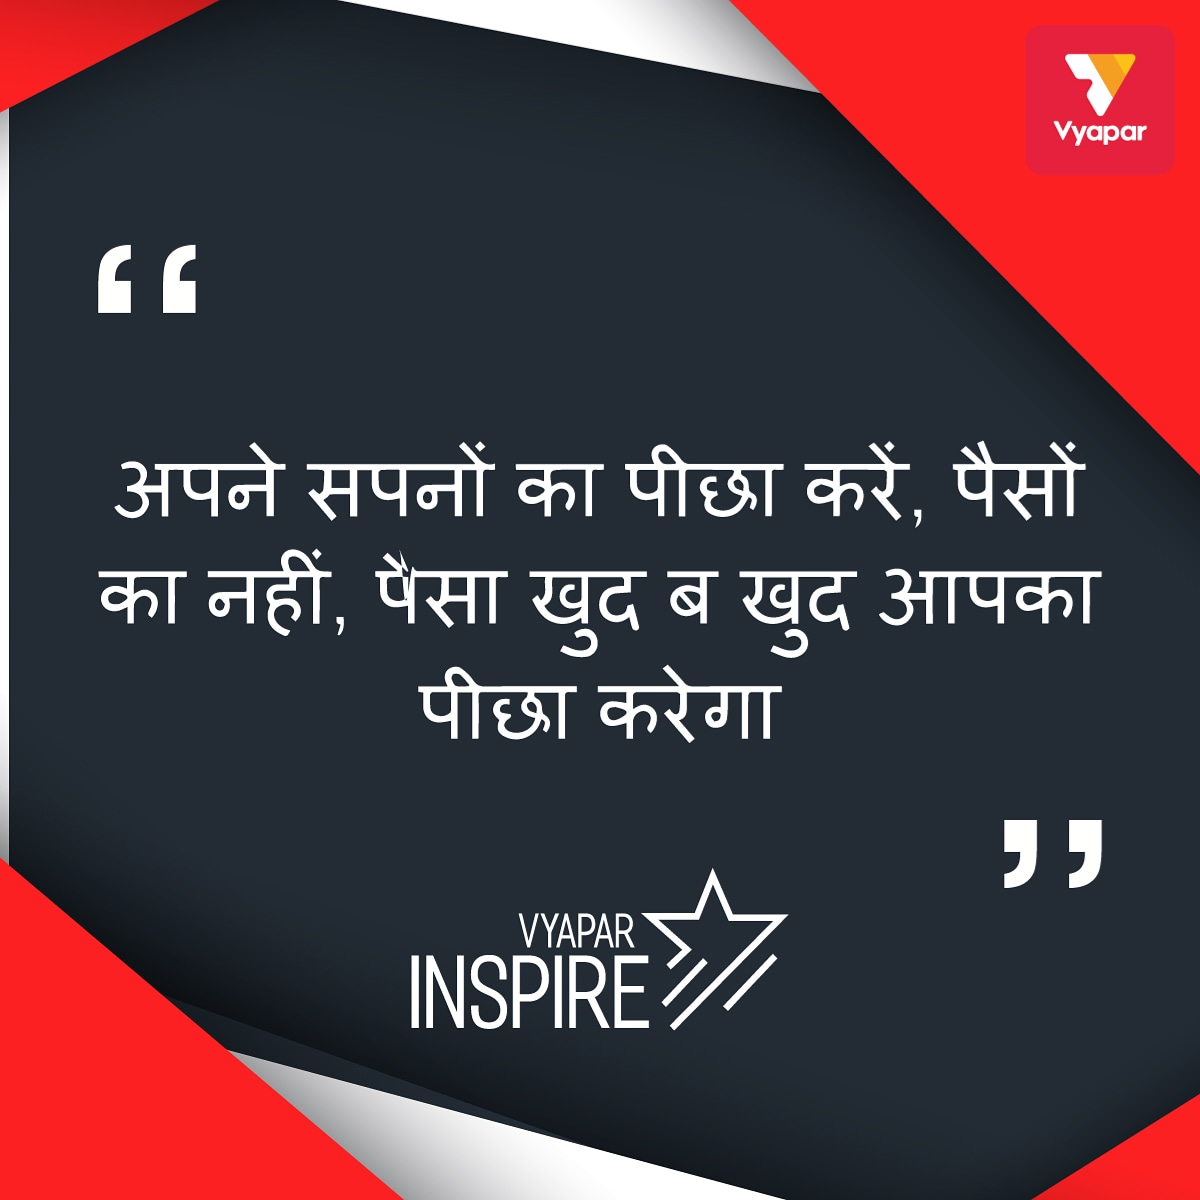 Quote for the day   #WednesdayThoughts #WednesdayWisdom #WednesdayVibes  #Wednesday #wednesdaymorning  #quoteoftheday  #businessquotes  #MotivationalQuotes   #alibaba #business#businessquotes#businesscasual#businessowner#businesshindi #businesswomanpic.twitter.com/8bAkTh0WEd